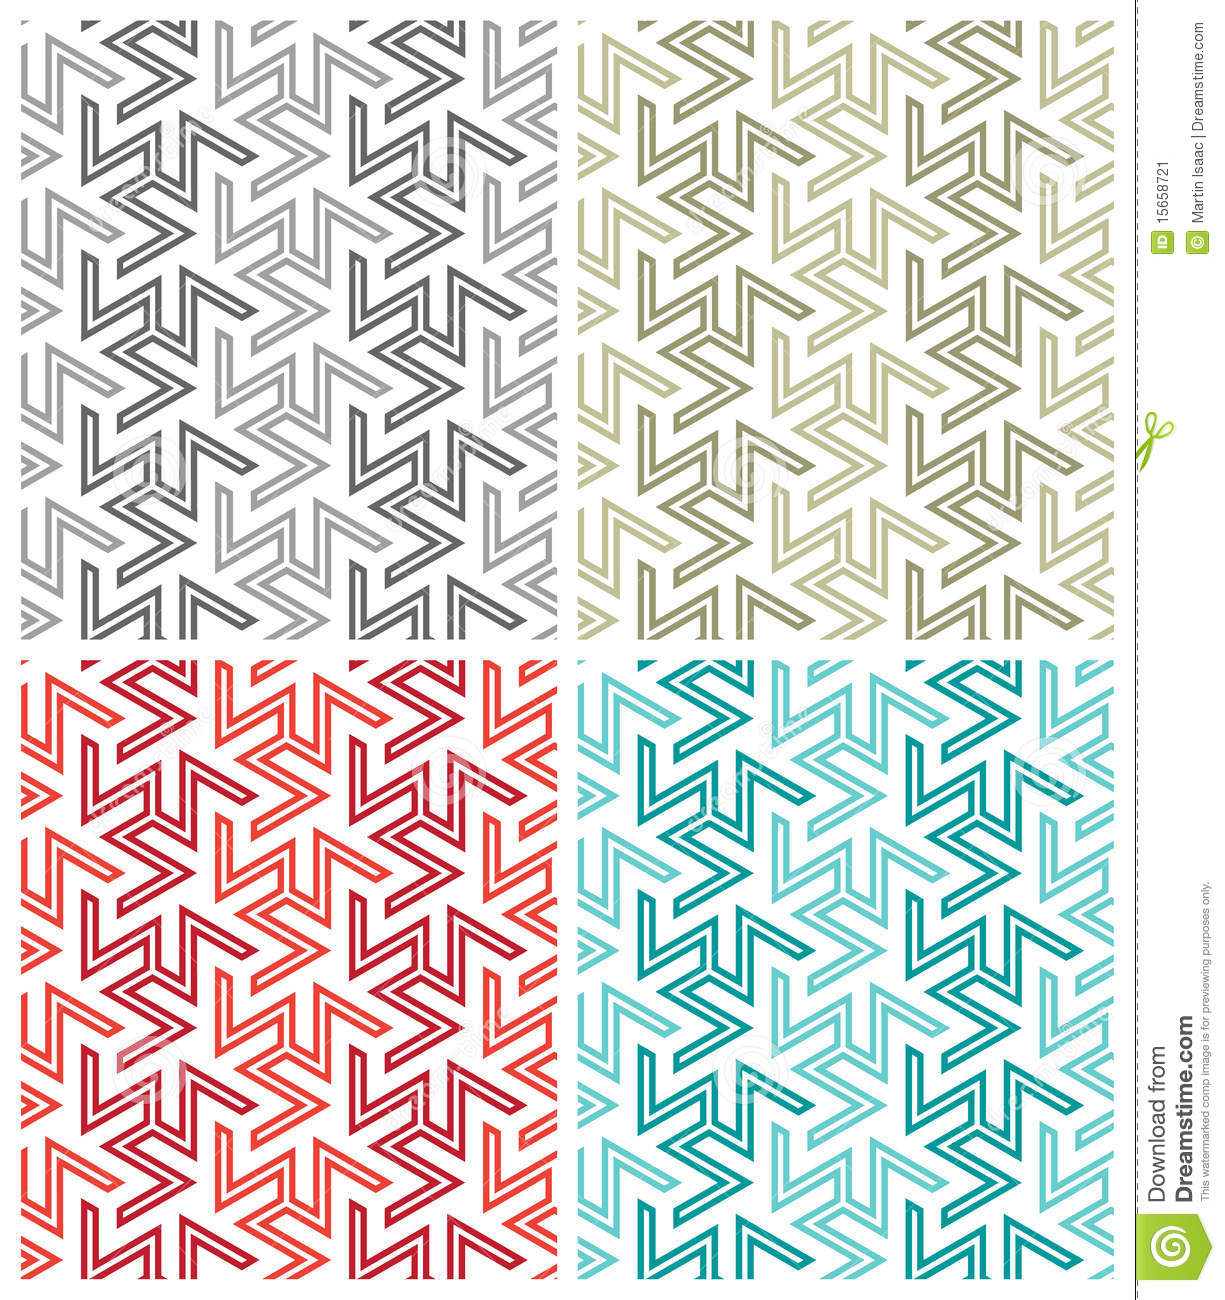 Download Arabesque Repeat Patterns stock vector. Illustration of repeating - 15658721